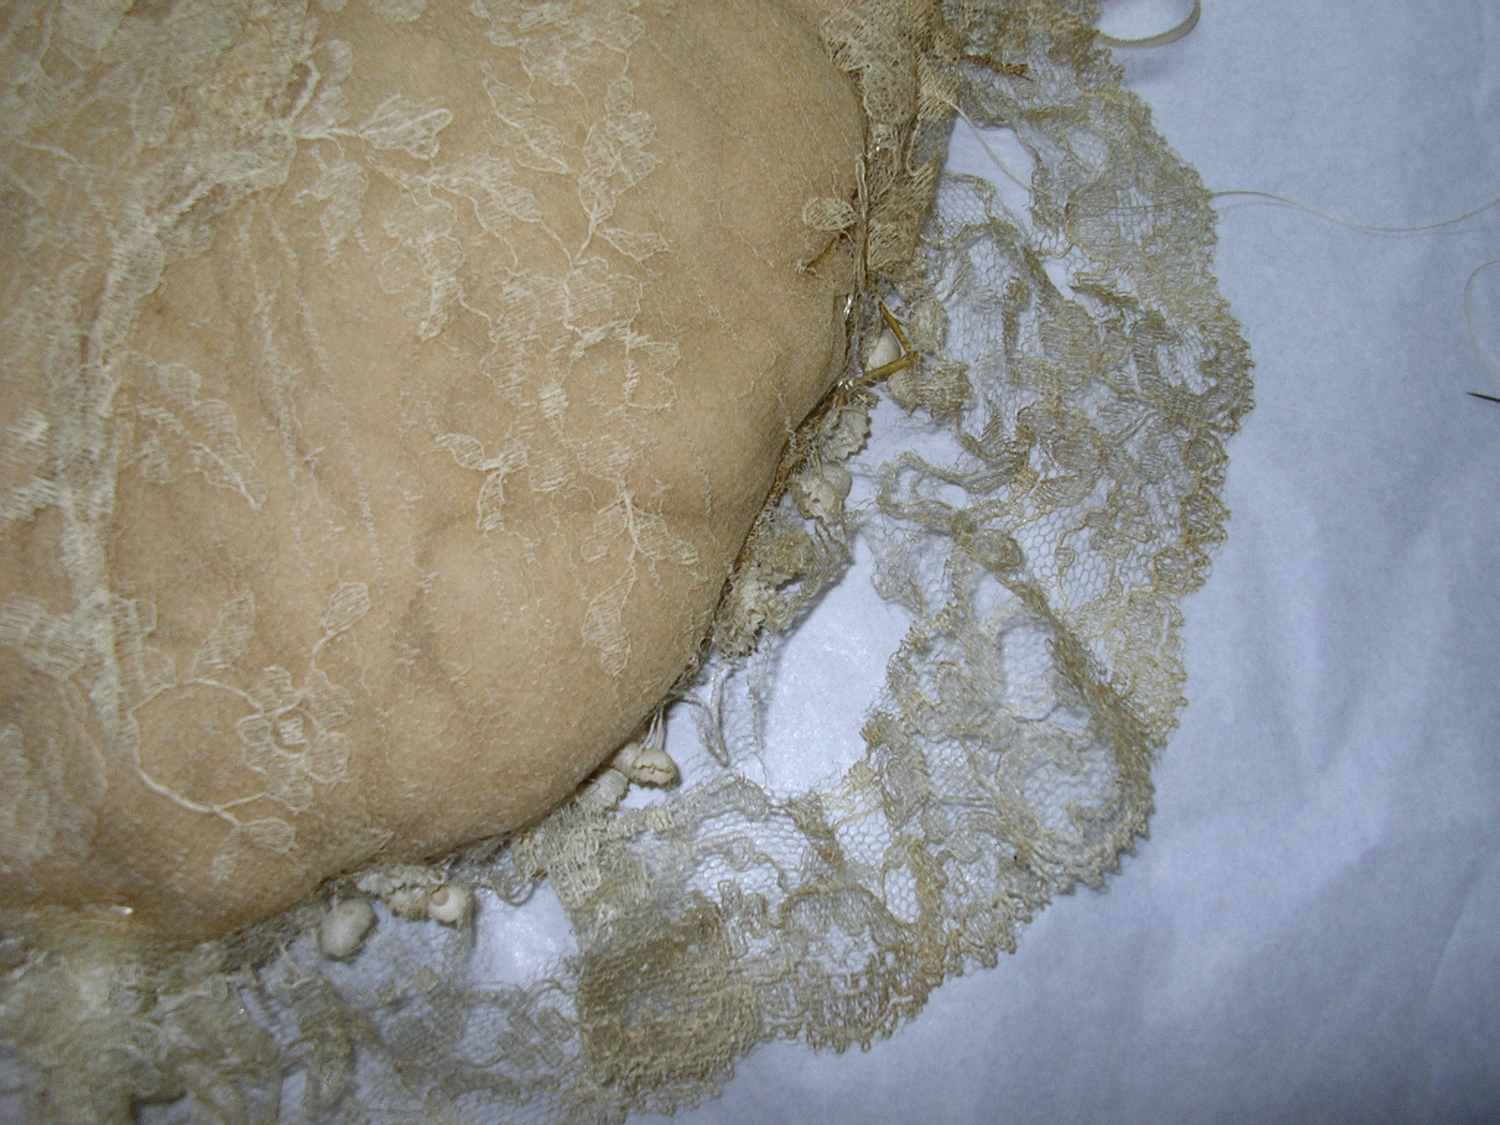 While it remains fragile... with some gently applied stitches, (and the bearer wearing gloves!)...